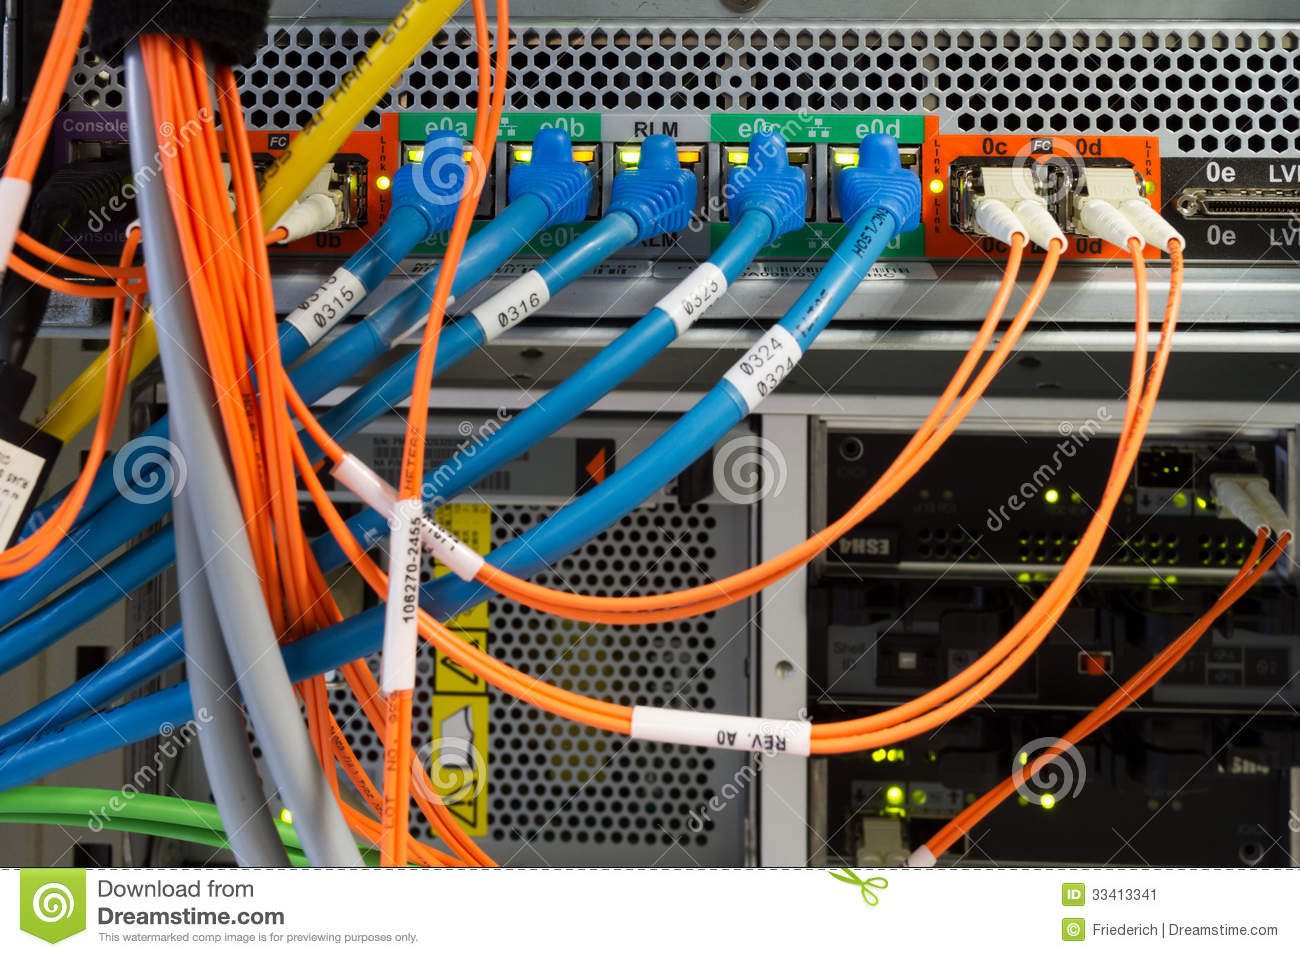 Networking Rack Wire Harness Circuit Diagram Symbols Wiring Workstations Network Stock Image Of Components Transfer 33413341 Rh Dreamstime Com Storage Wall